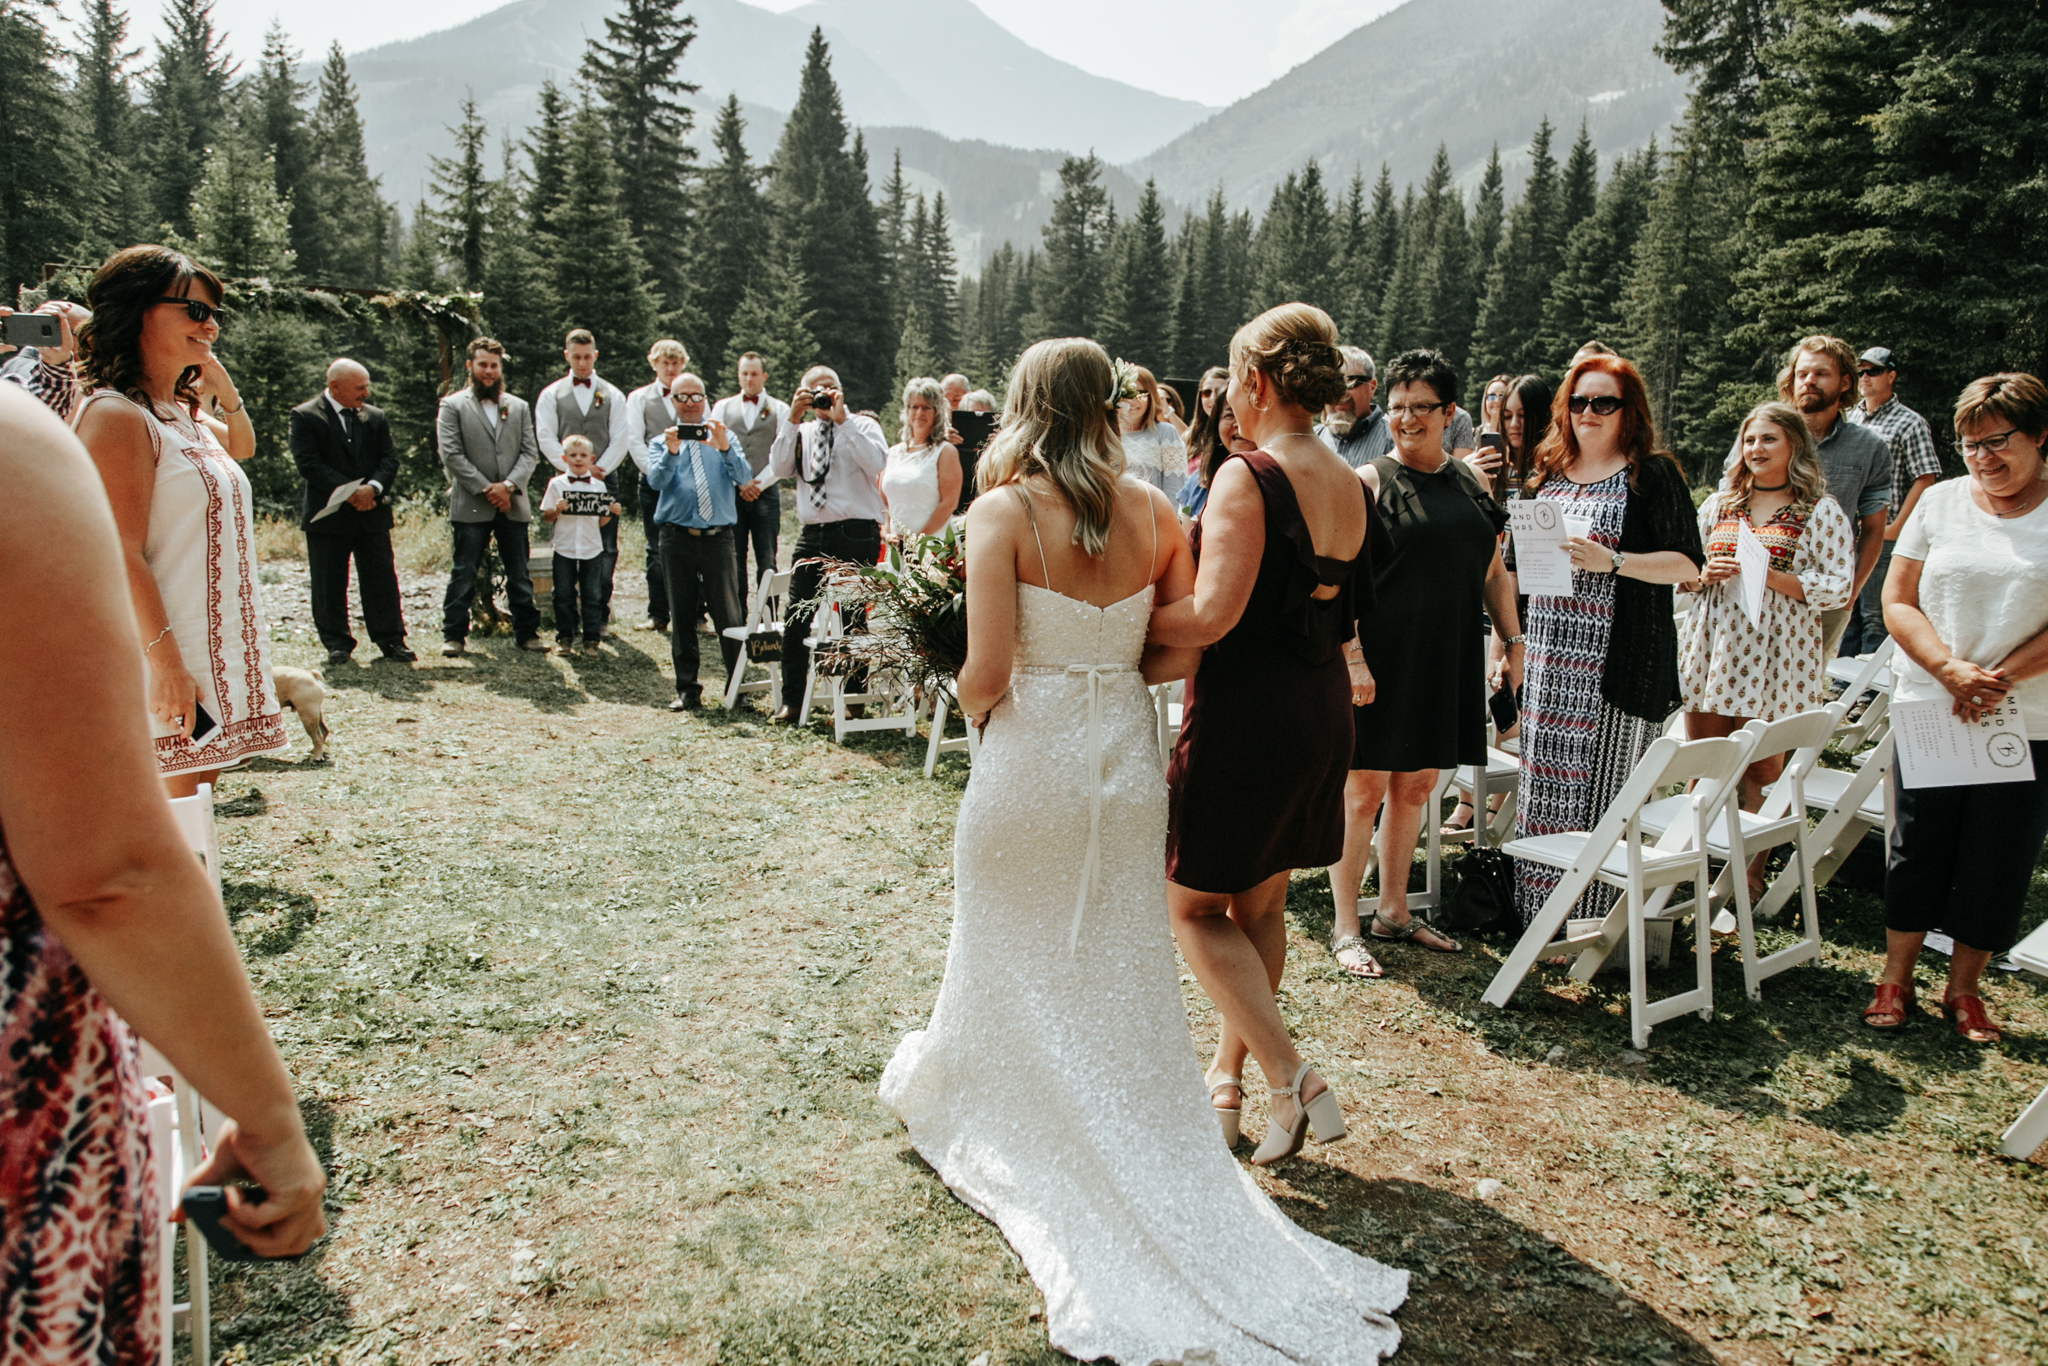 castle-mountain-wedding-photographer-love-and-be-loved-photography-lethbridge-pincher-creek-crowsnest-pass-yannick-rylee-photo-image-picture-65.jpg